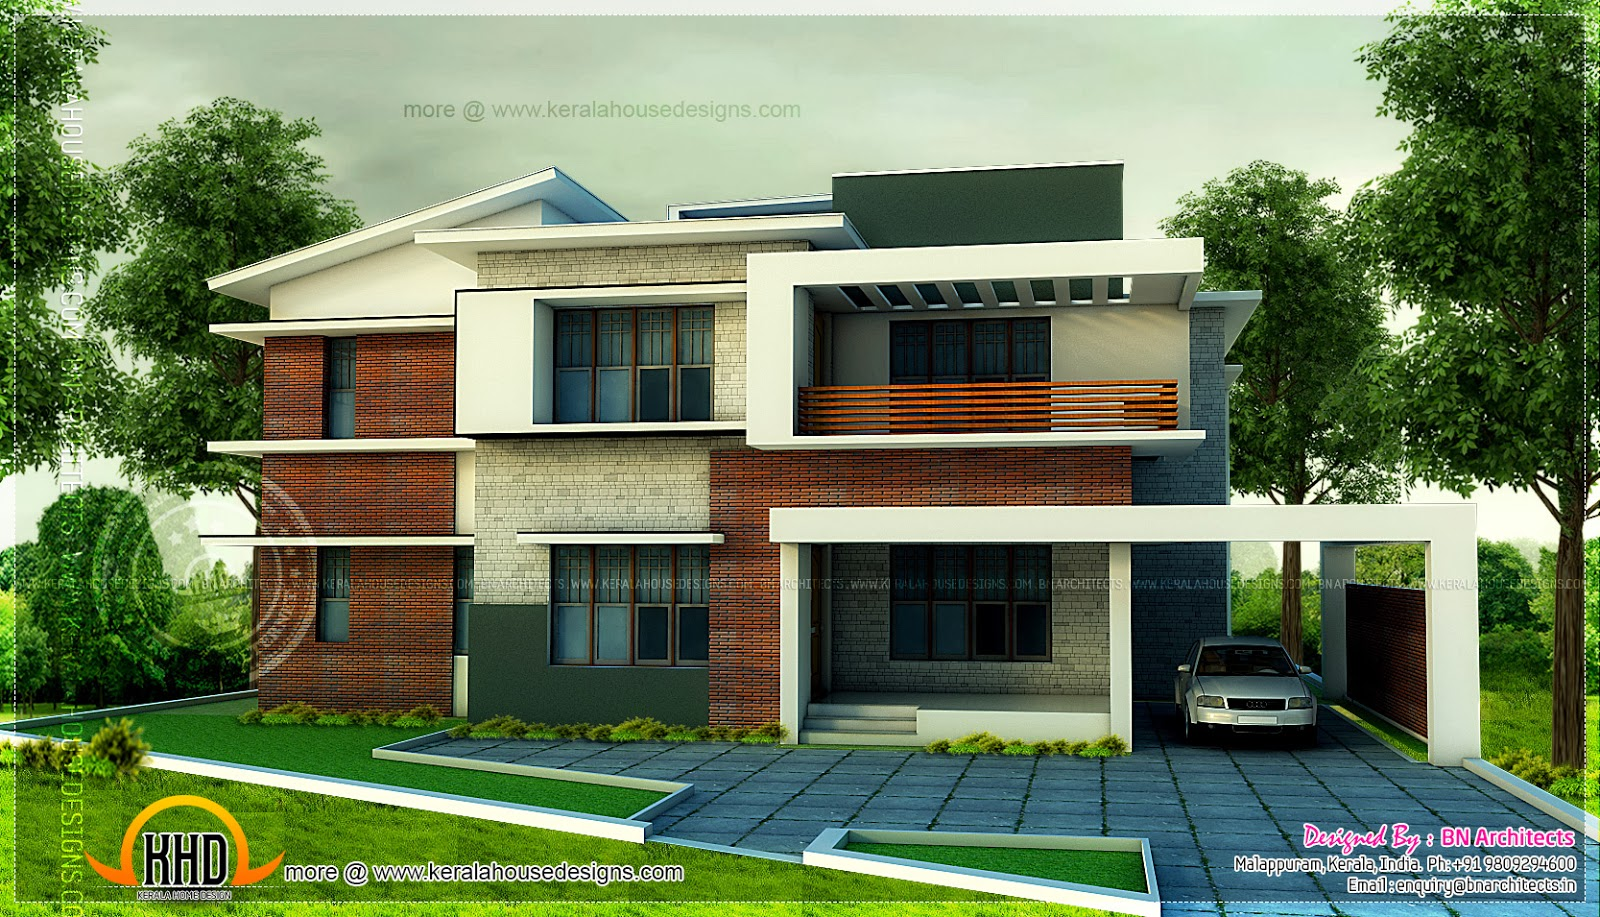 5 bedroom modern home in 3440 sq feet floor plan for Five bedroom house